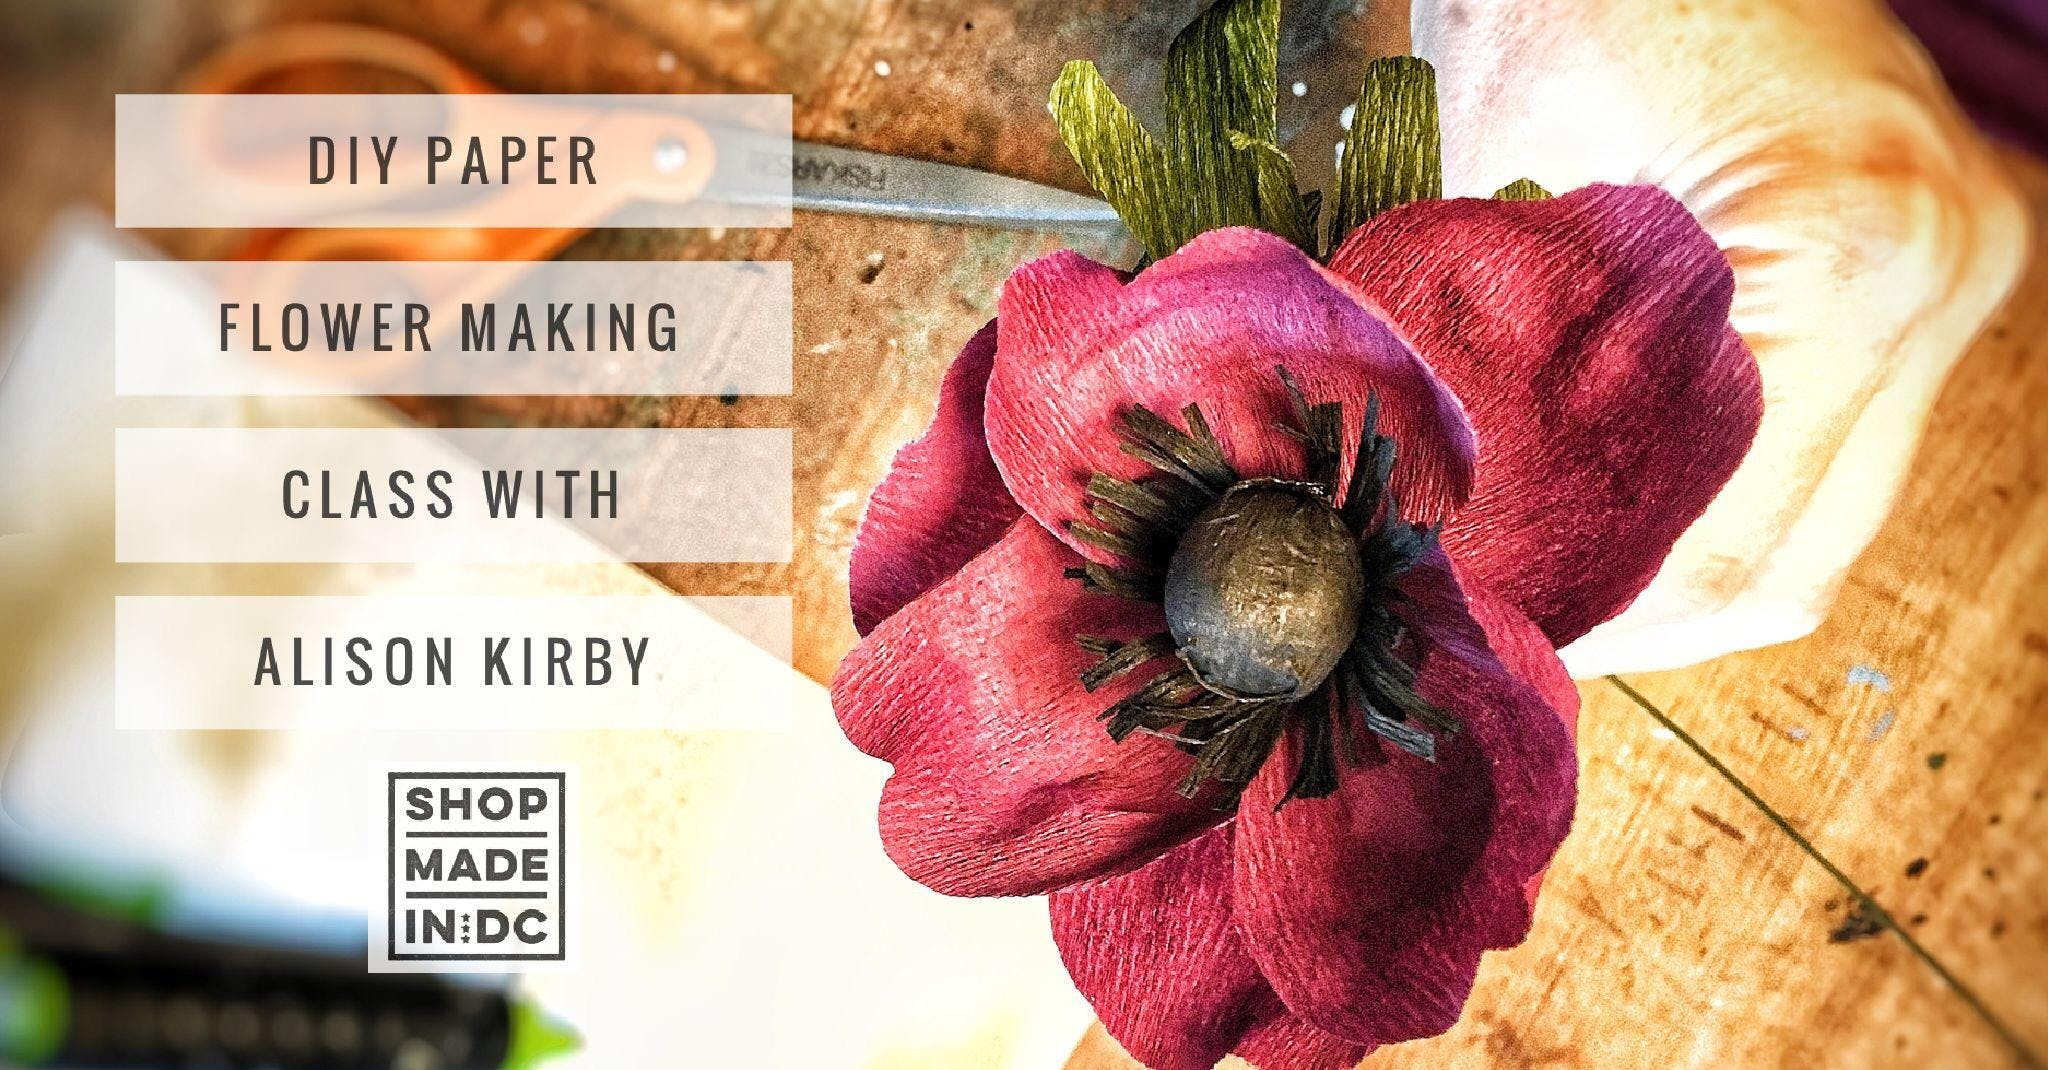 Diy Paper Flower Making With Alison Kirby 13 Jul 2018